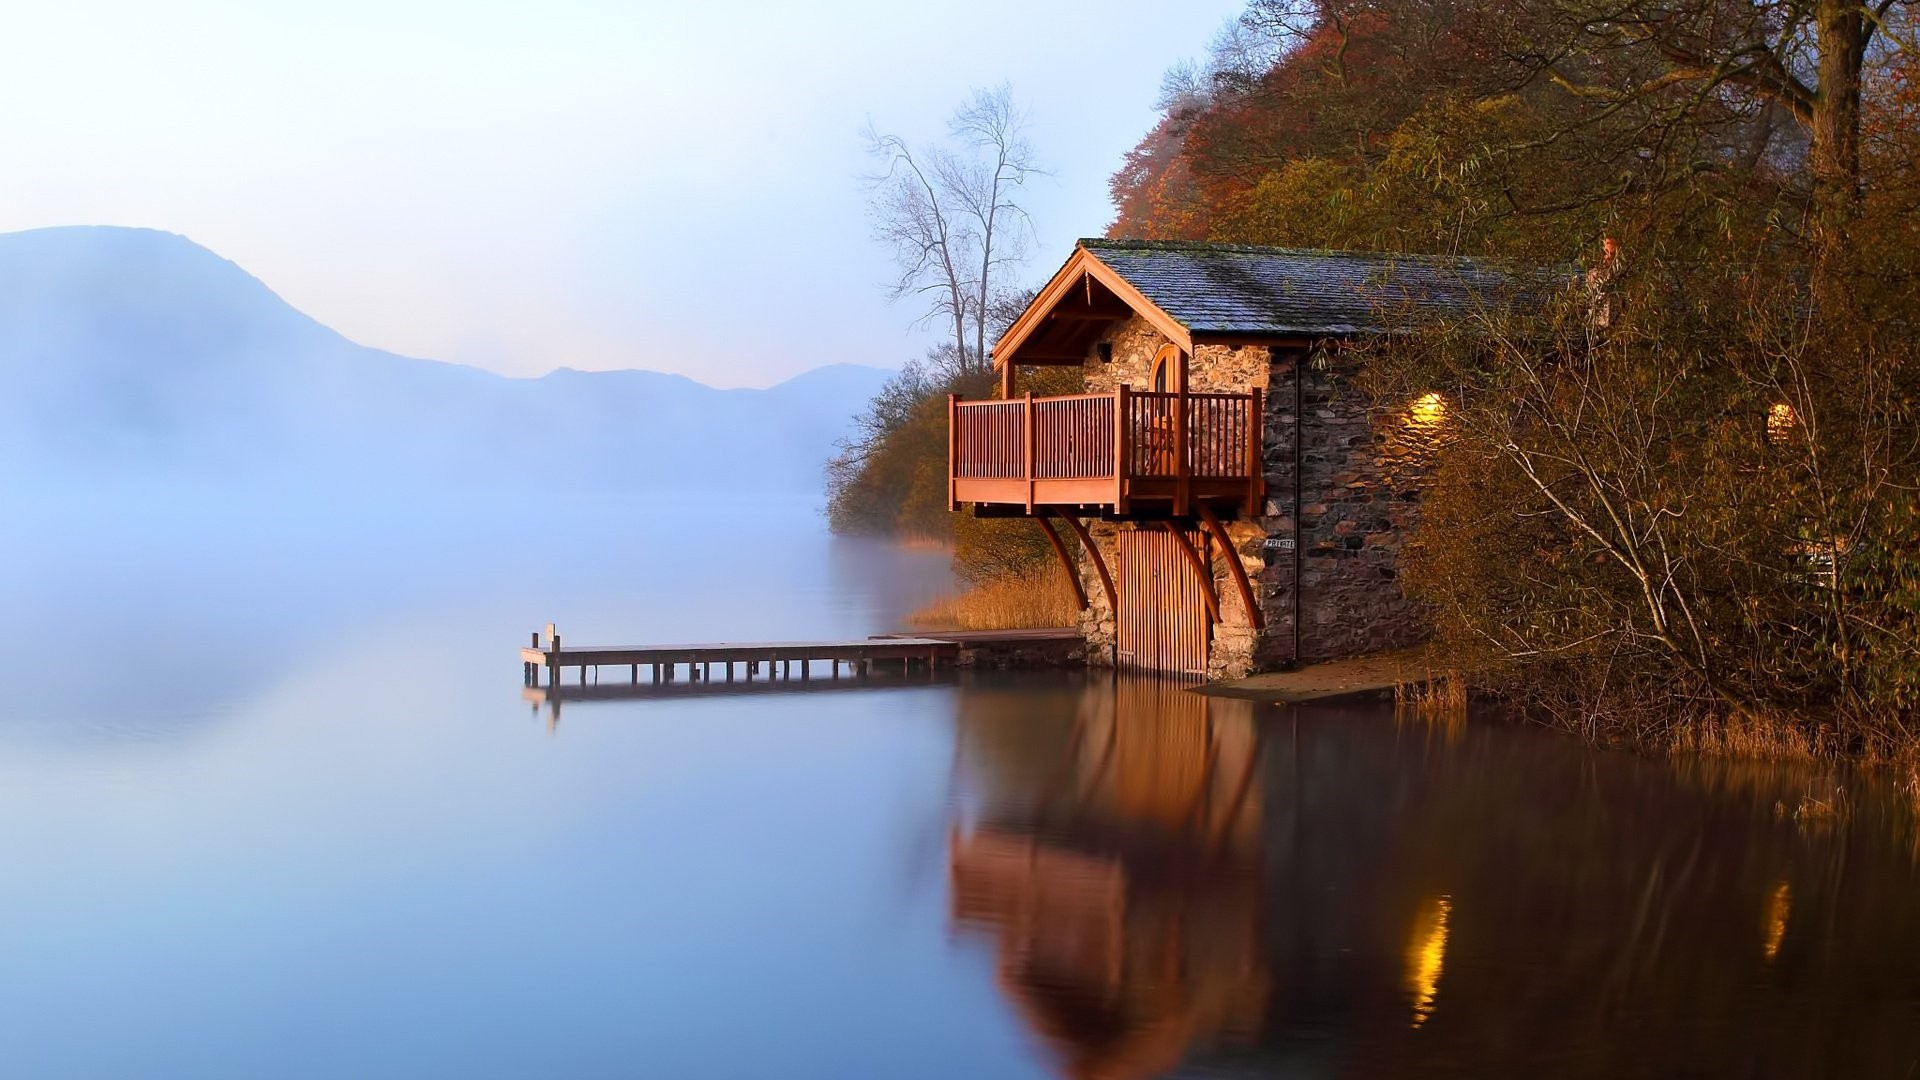 House By The River Art hd wallpaper download